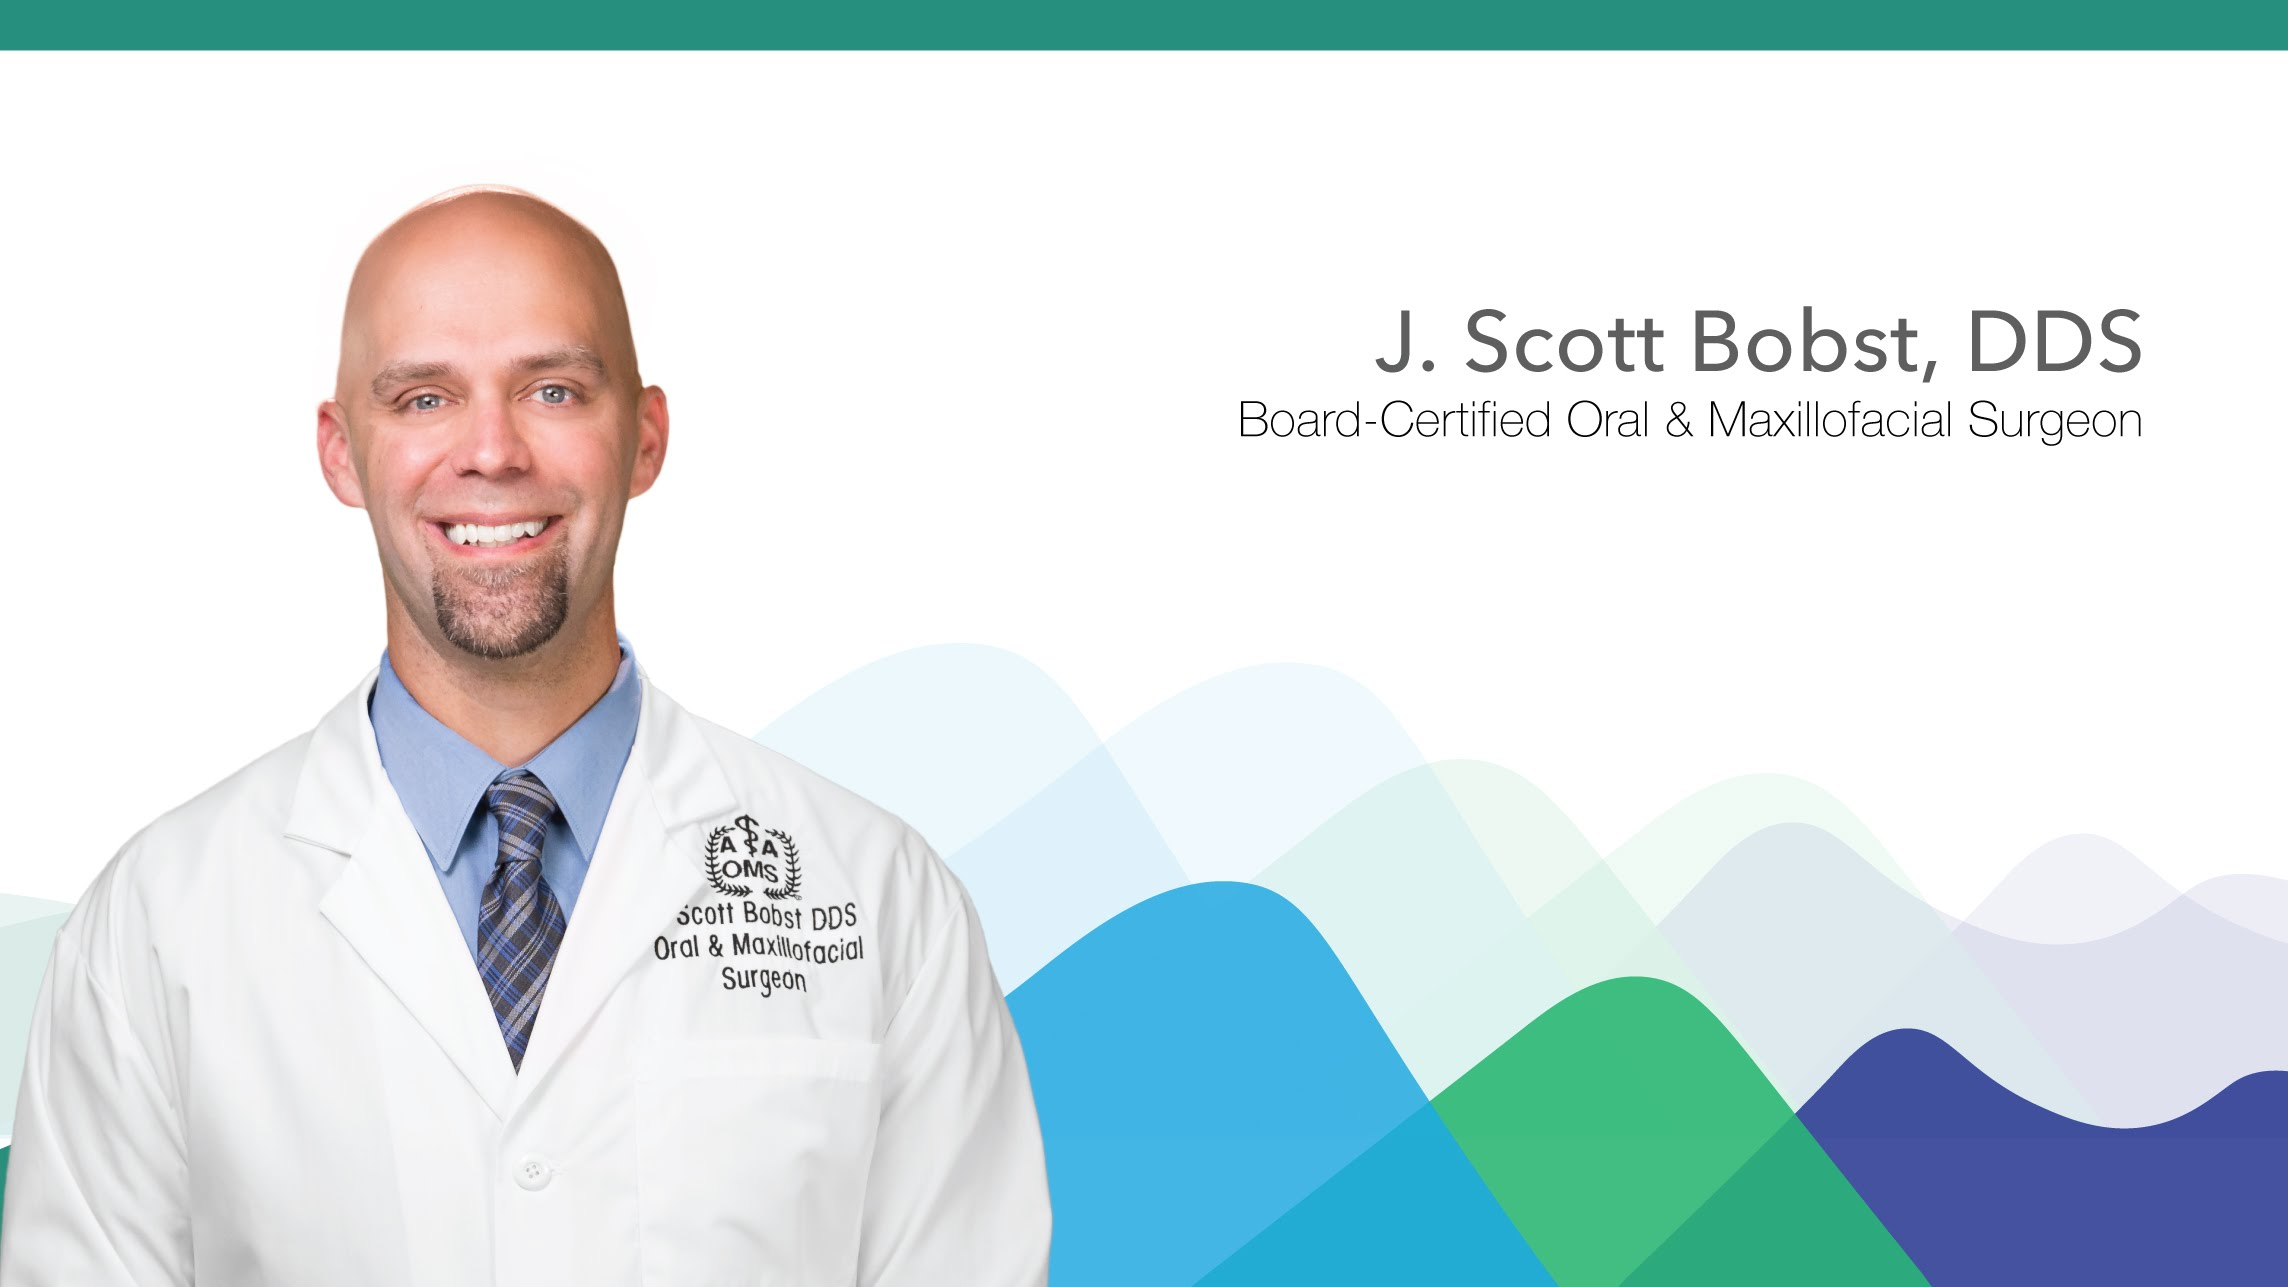 Dr. Bobst talks about his practice